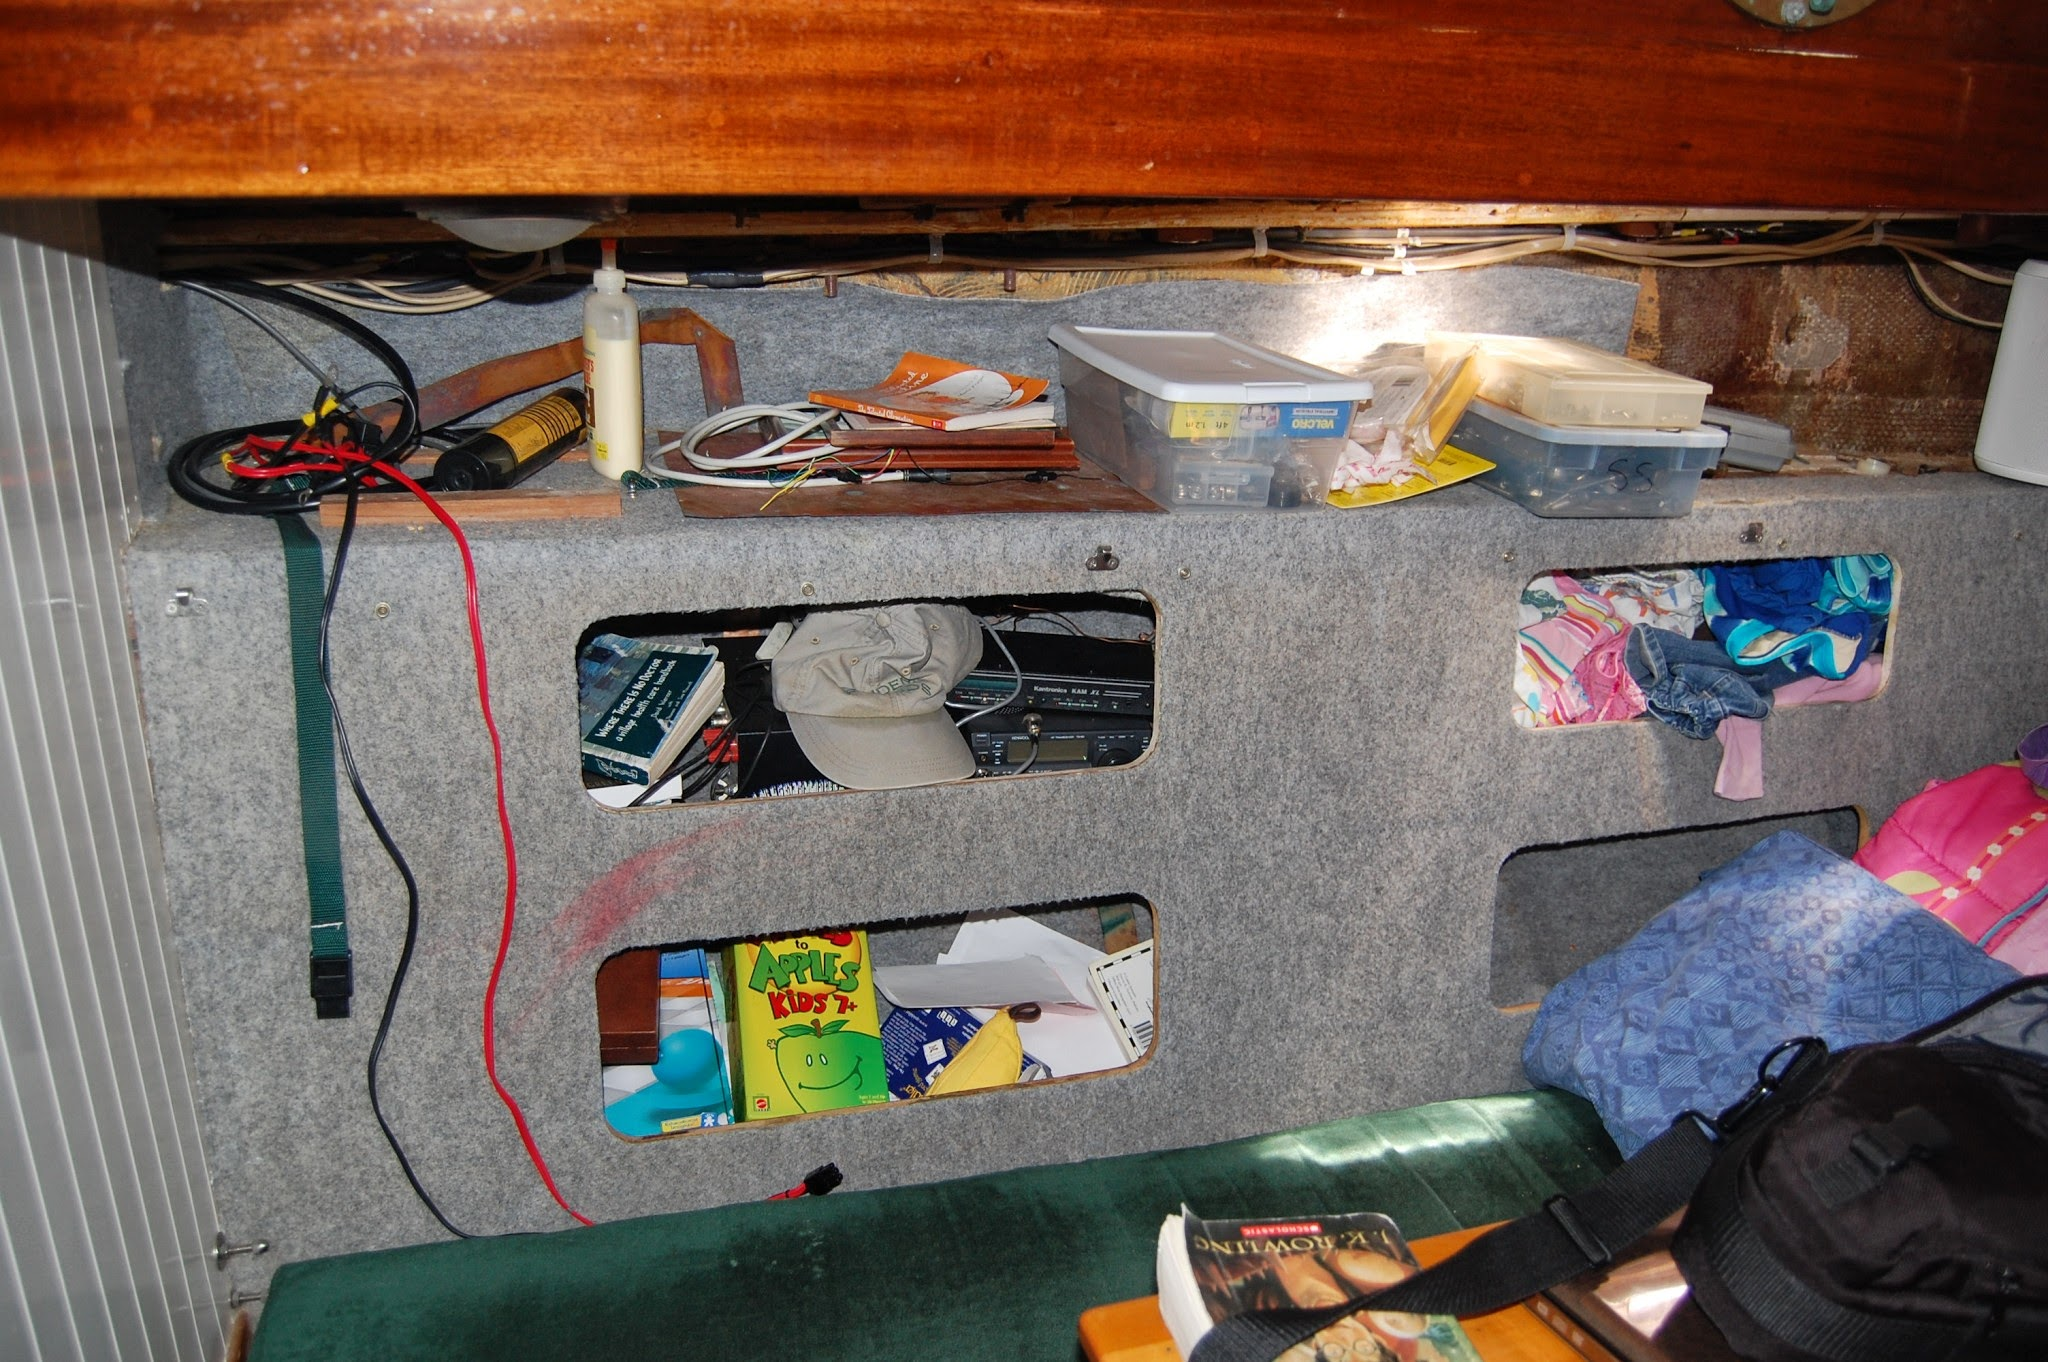 An earlier version of work on this space. Note the games, radio, and various amounts of STUFF.